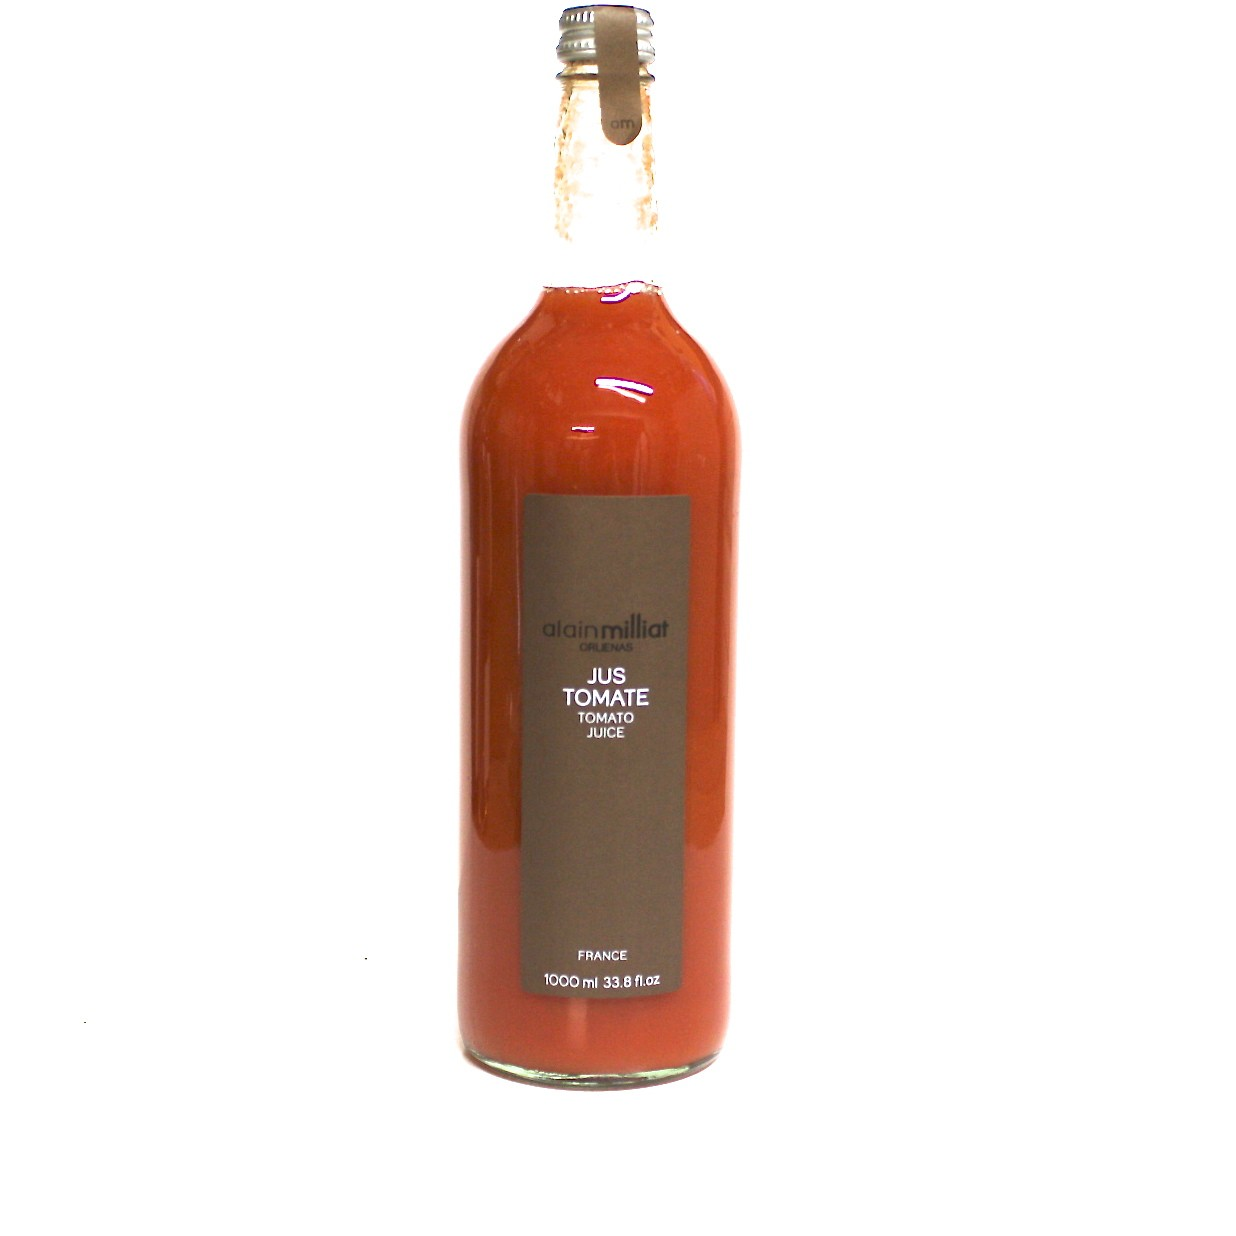 10/ Tomatjuice 33cl - Alain Milliat